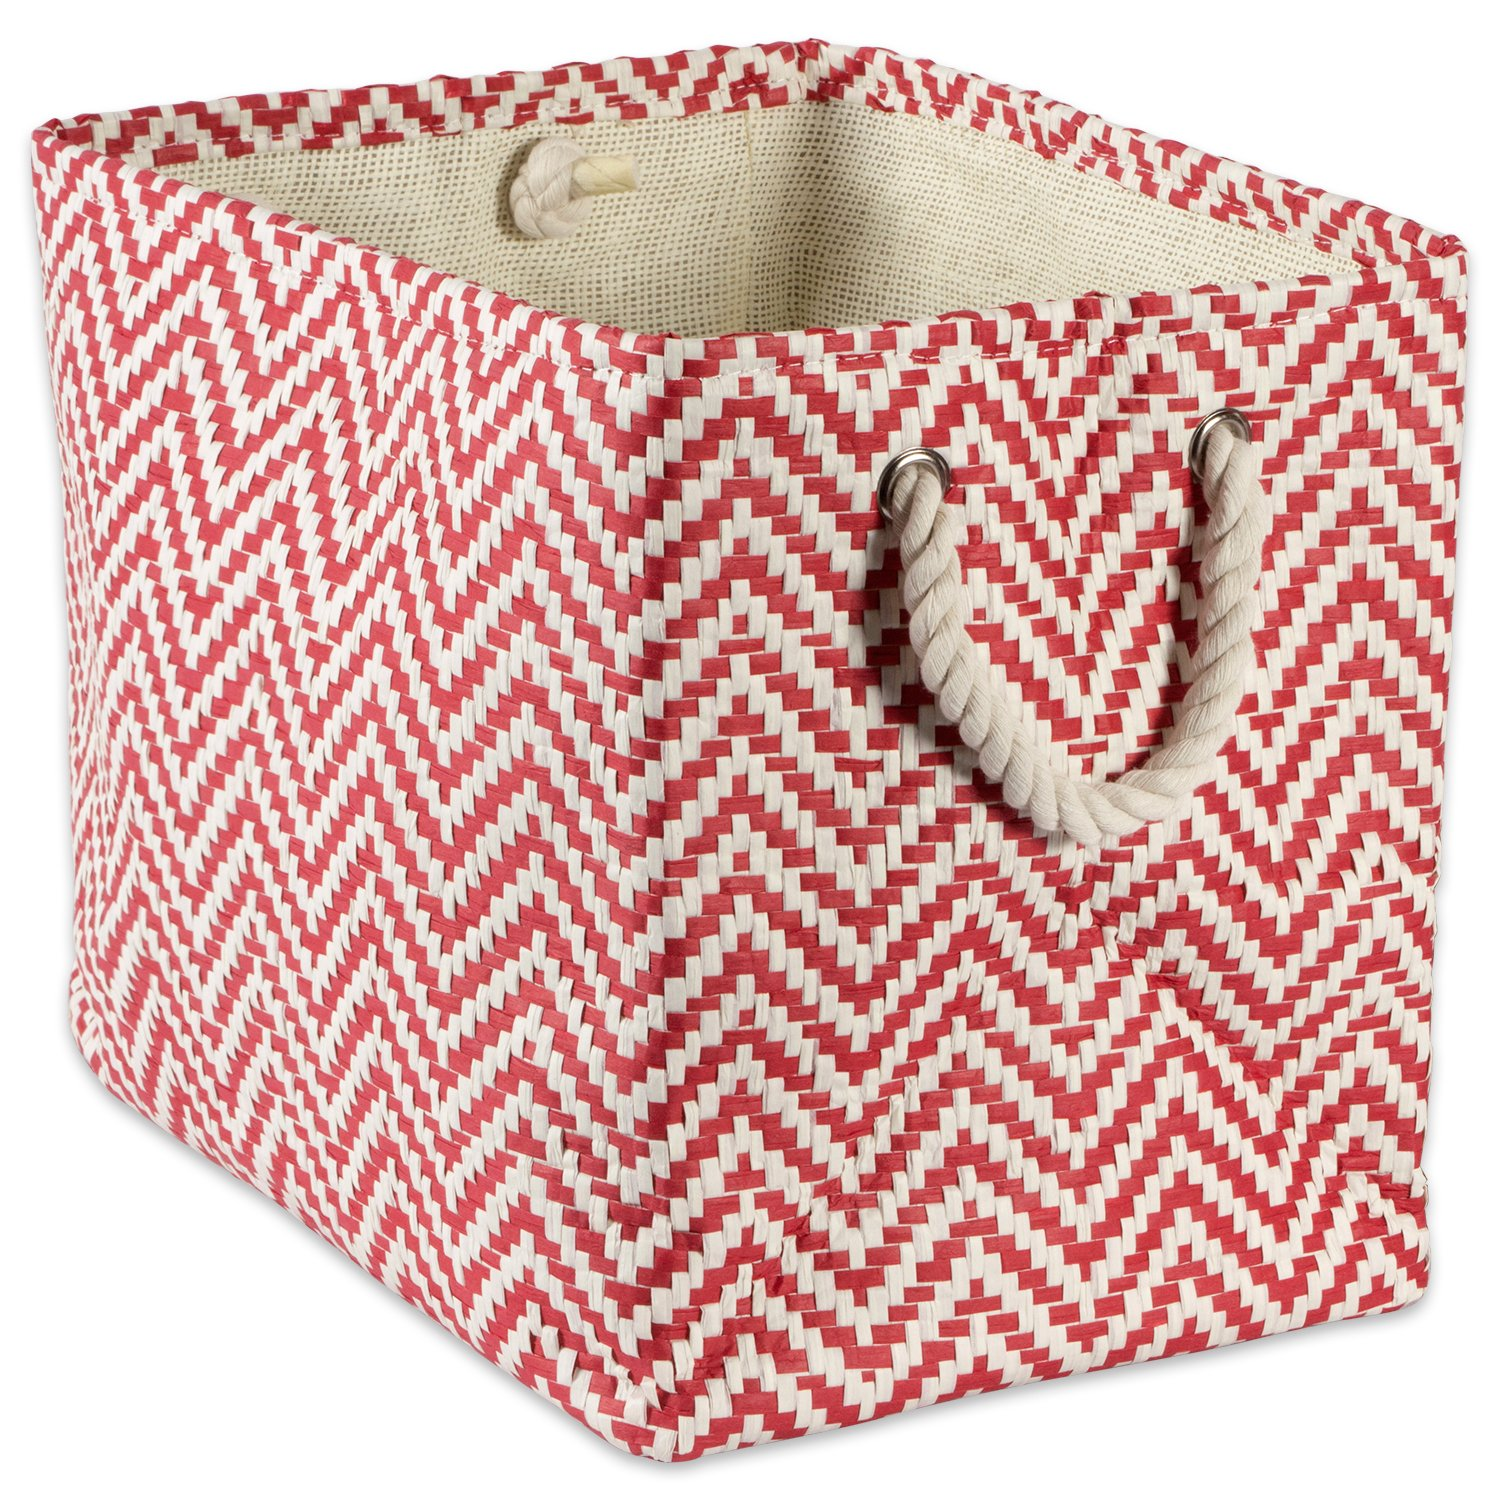 """DII Woven Paper Storage Basket or Bin, Collapsible & Convenient Home Organization Solution for Office, Bedroom, Closet, Toys, & Laundry (Medium – 15x10x12""""), Rust Chevron"""